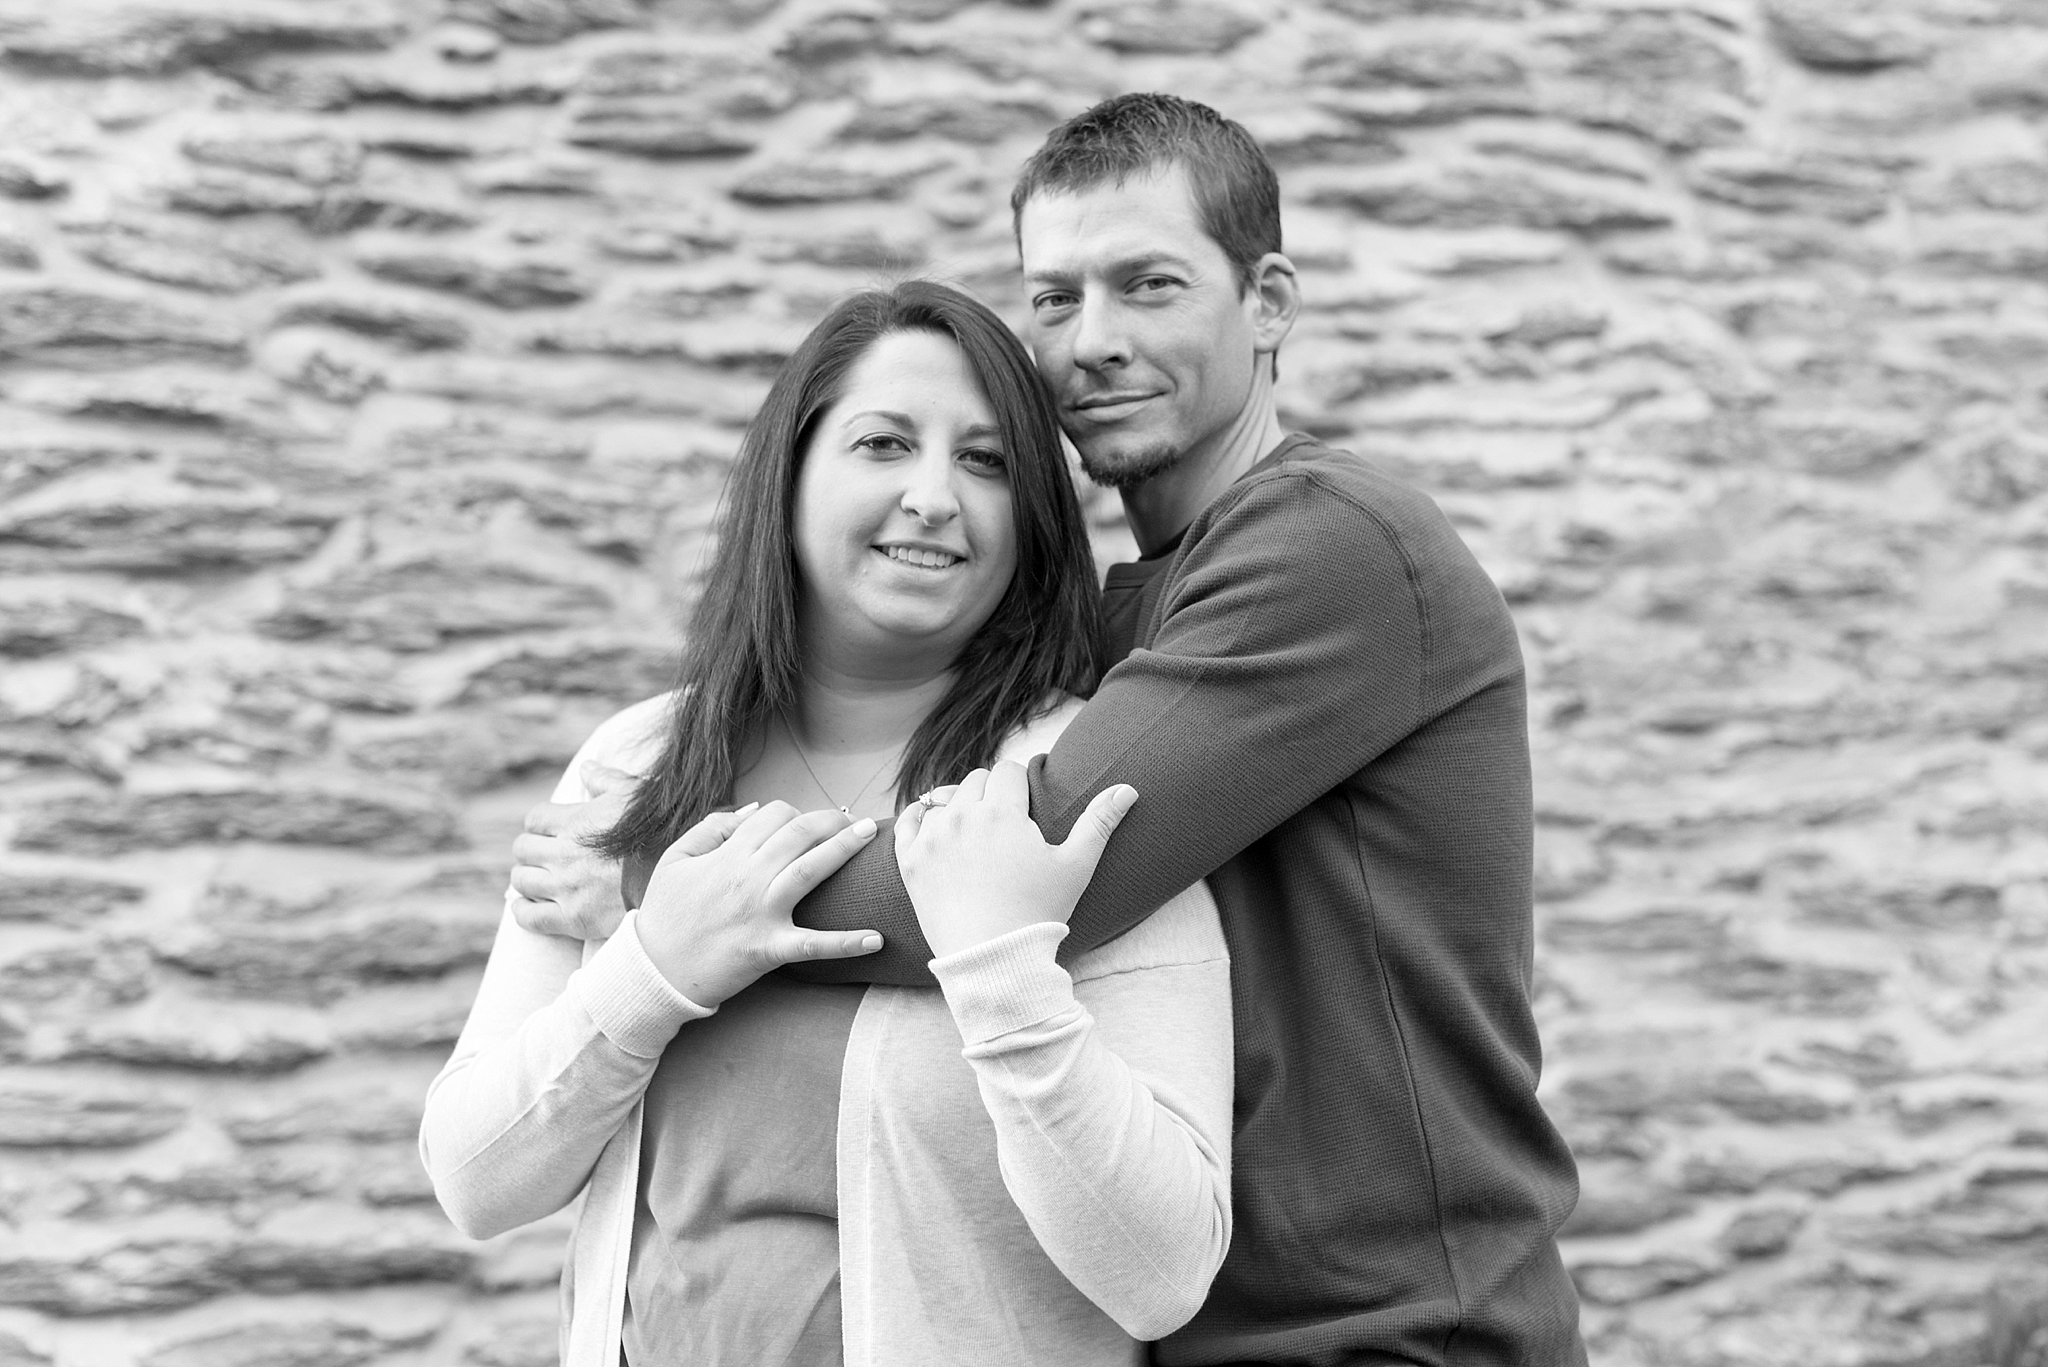 New Providence orchard Lancaster County Wedding and engagement photographer photo_0951.jpg